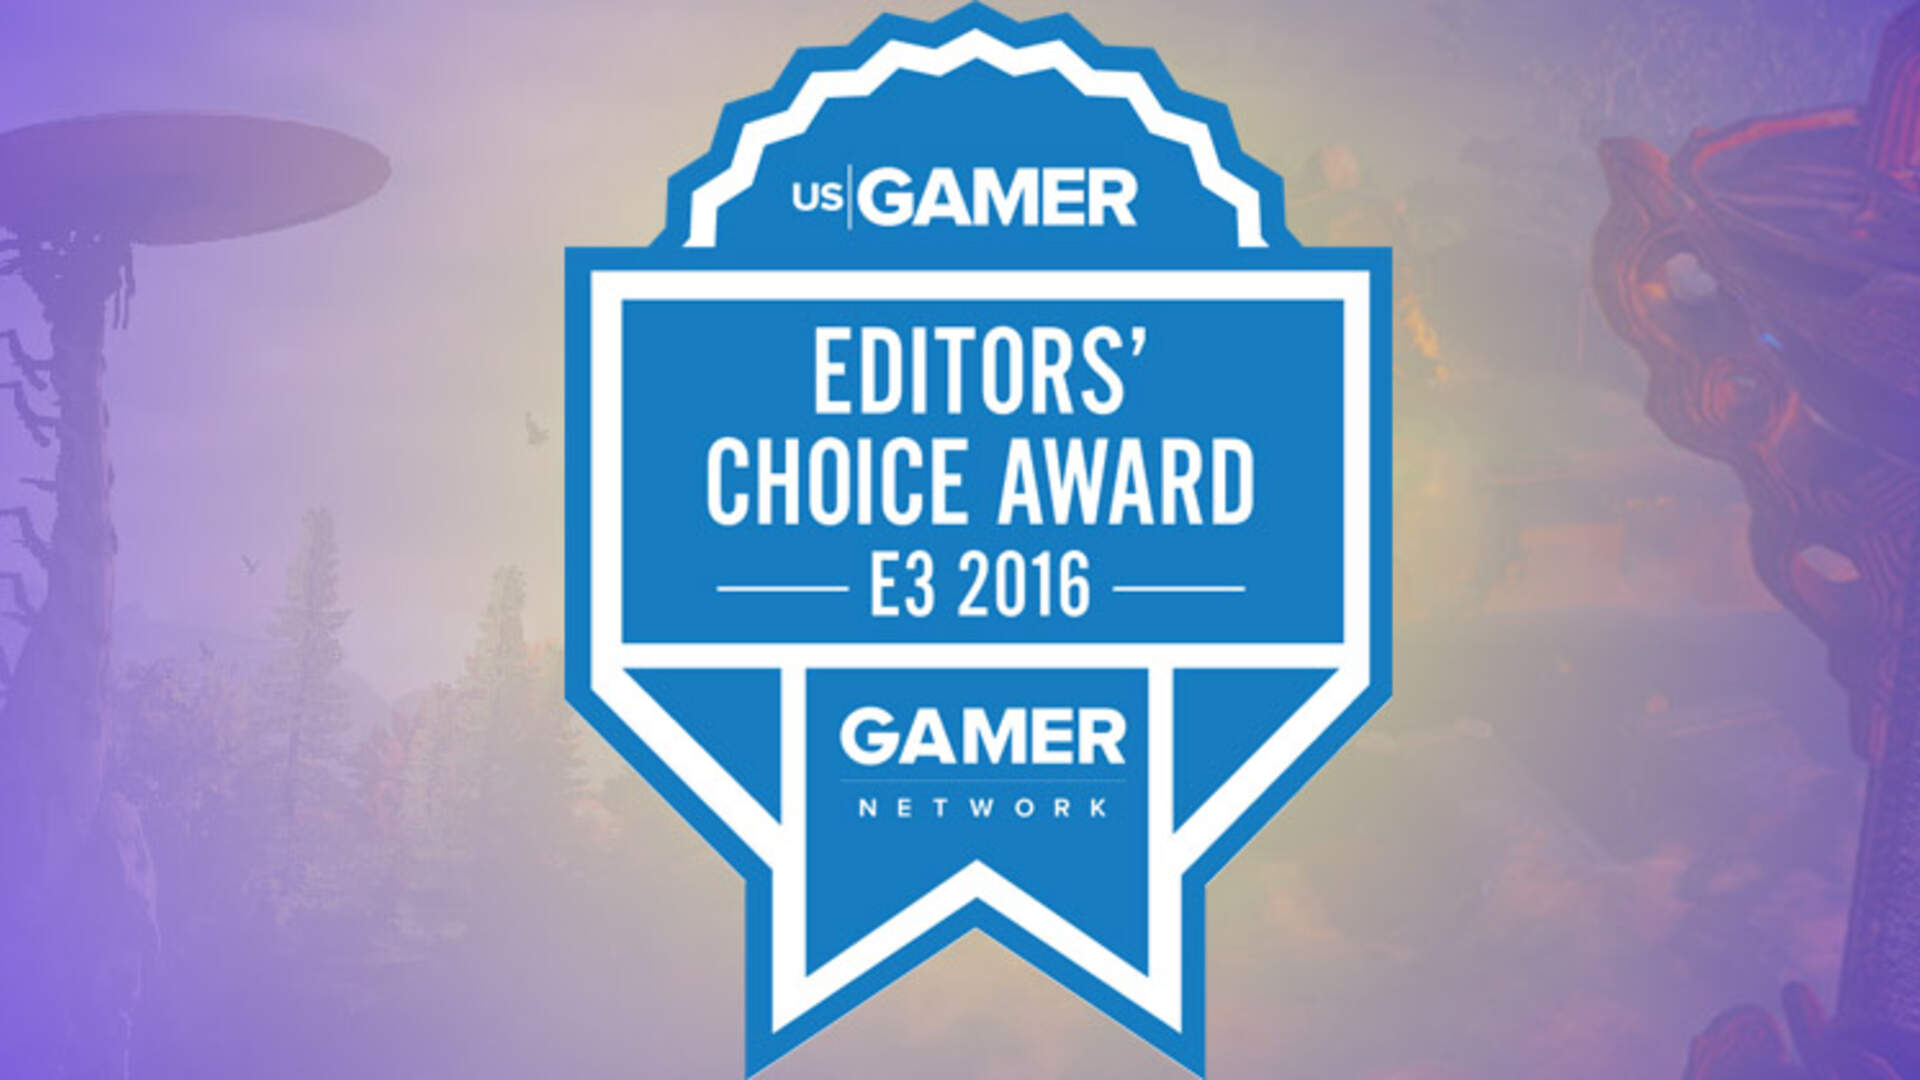 USgamer's Best of E3 2016 Award Winners and Community Picks